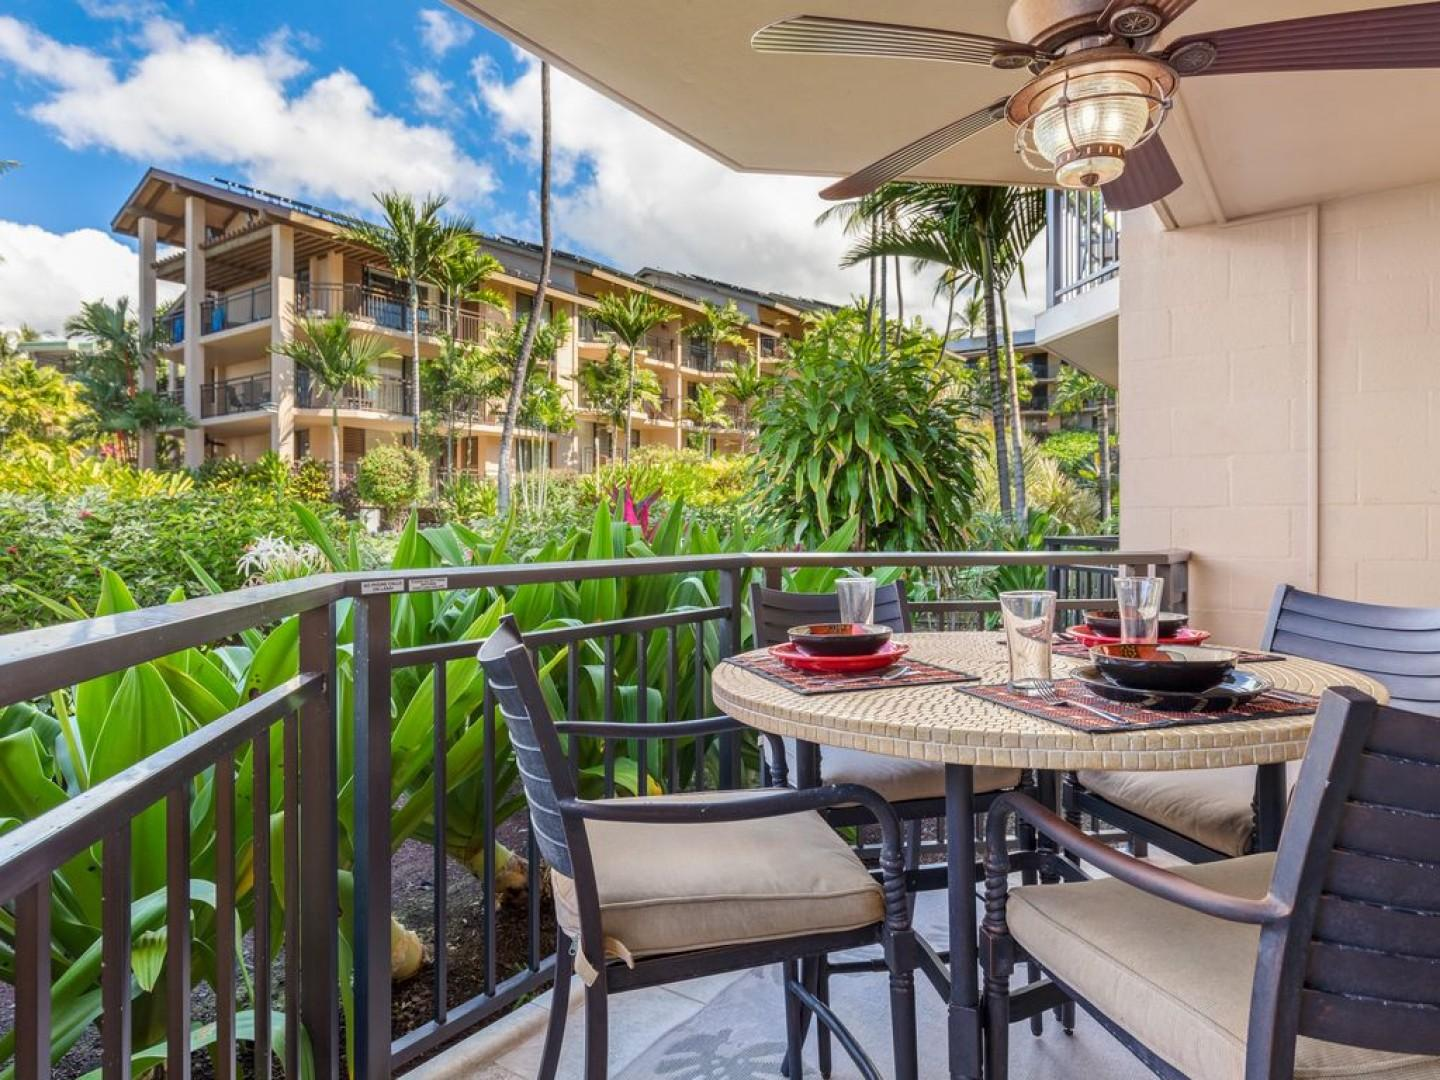 Enjoy the outdoor dining for 4!